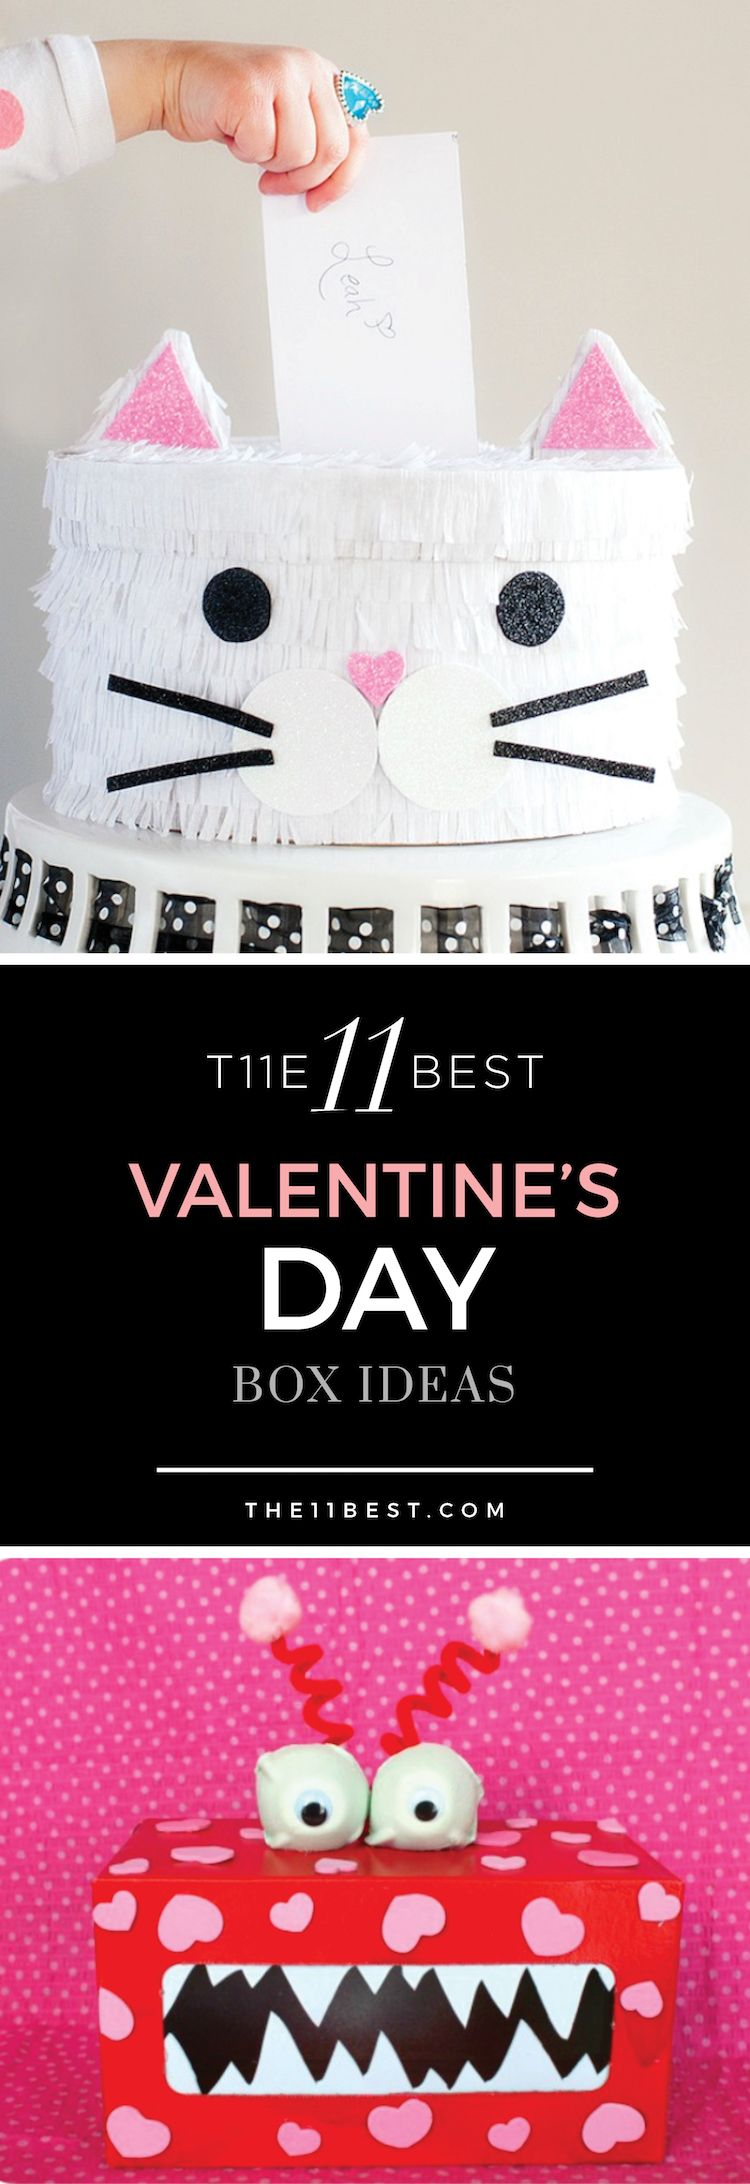 the 11 best homemade valentine boxes - Homemade Valentine Box Ideas